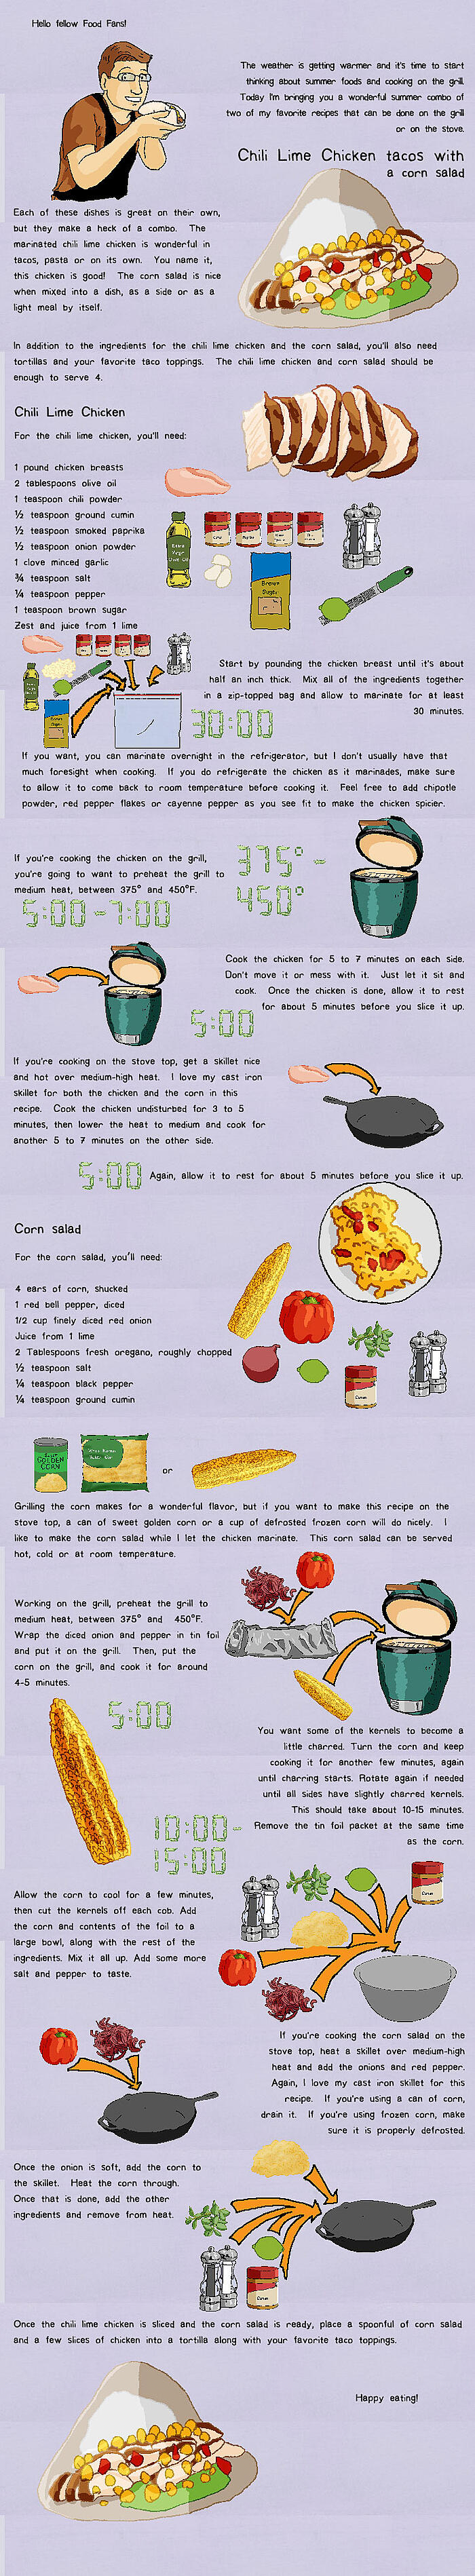 Food comics chili lime chicken tacos Can you put hot food in the refrigerator